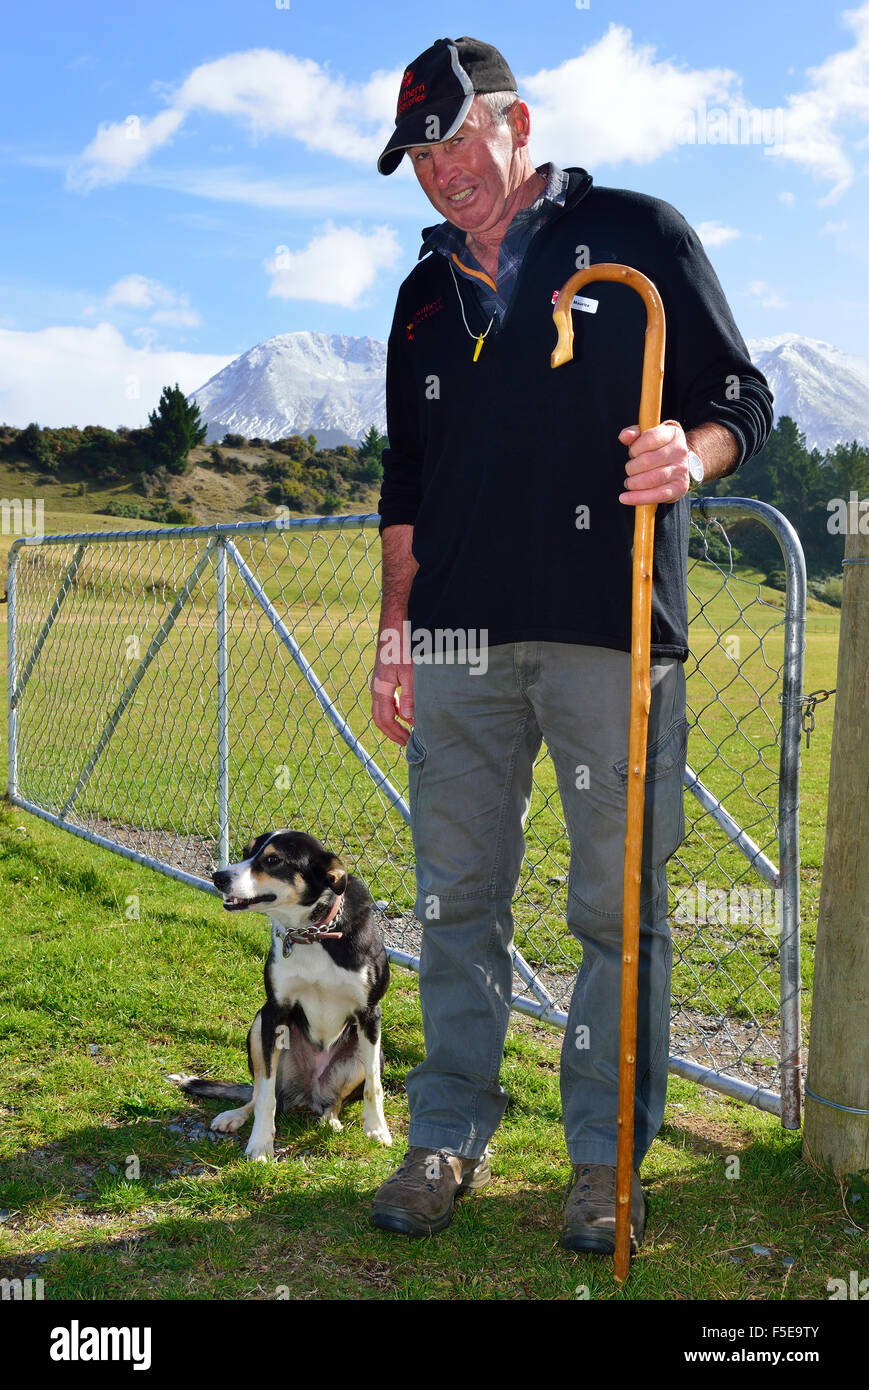 Sheep farmer and his trusty sheep dog on a merino sheep farm St Nicholas Farm Queenstown with snow capped southern - Stock Image